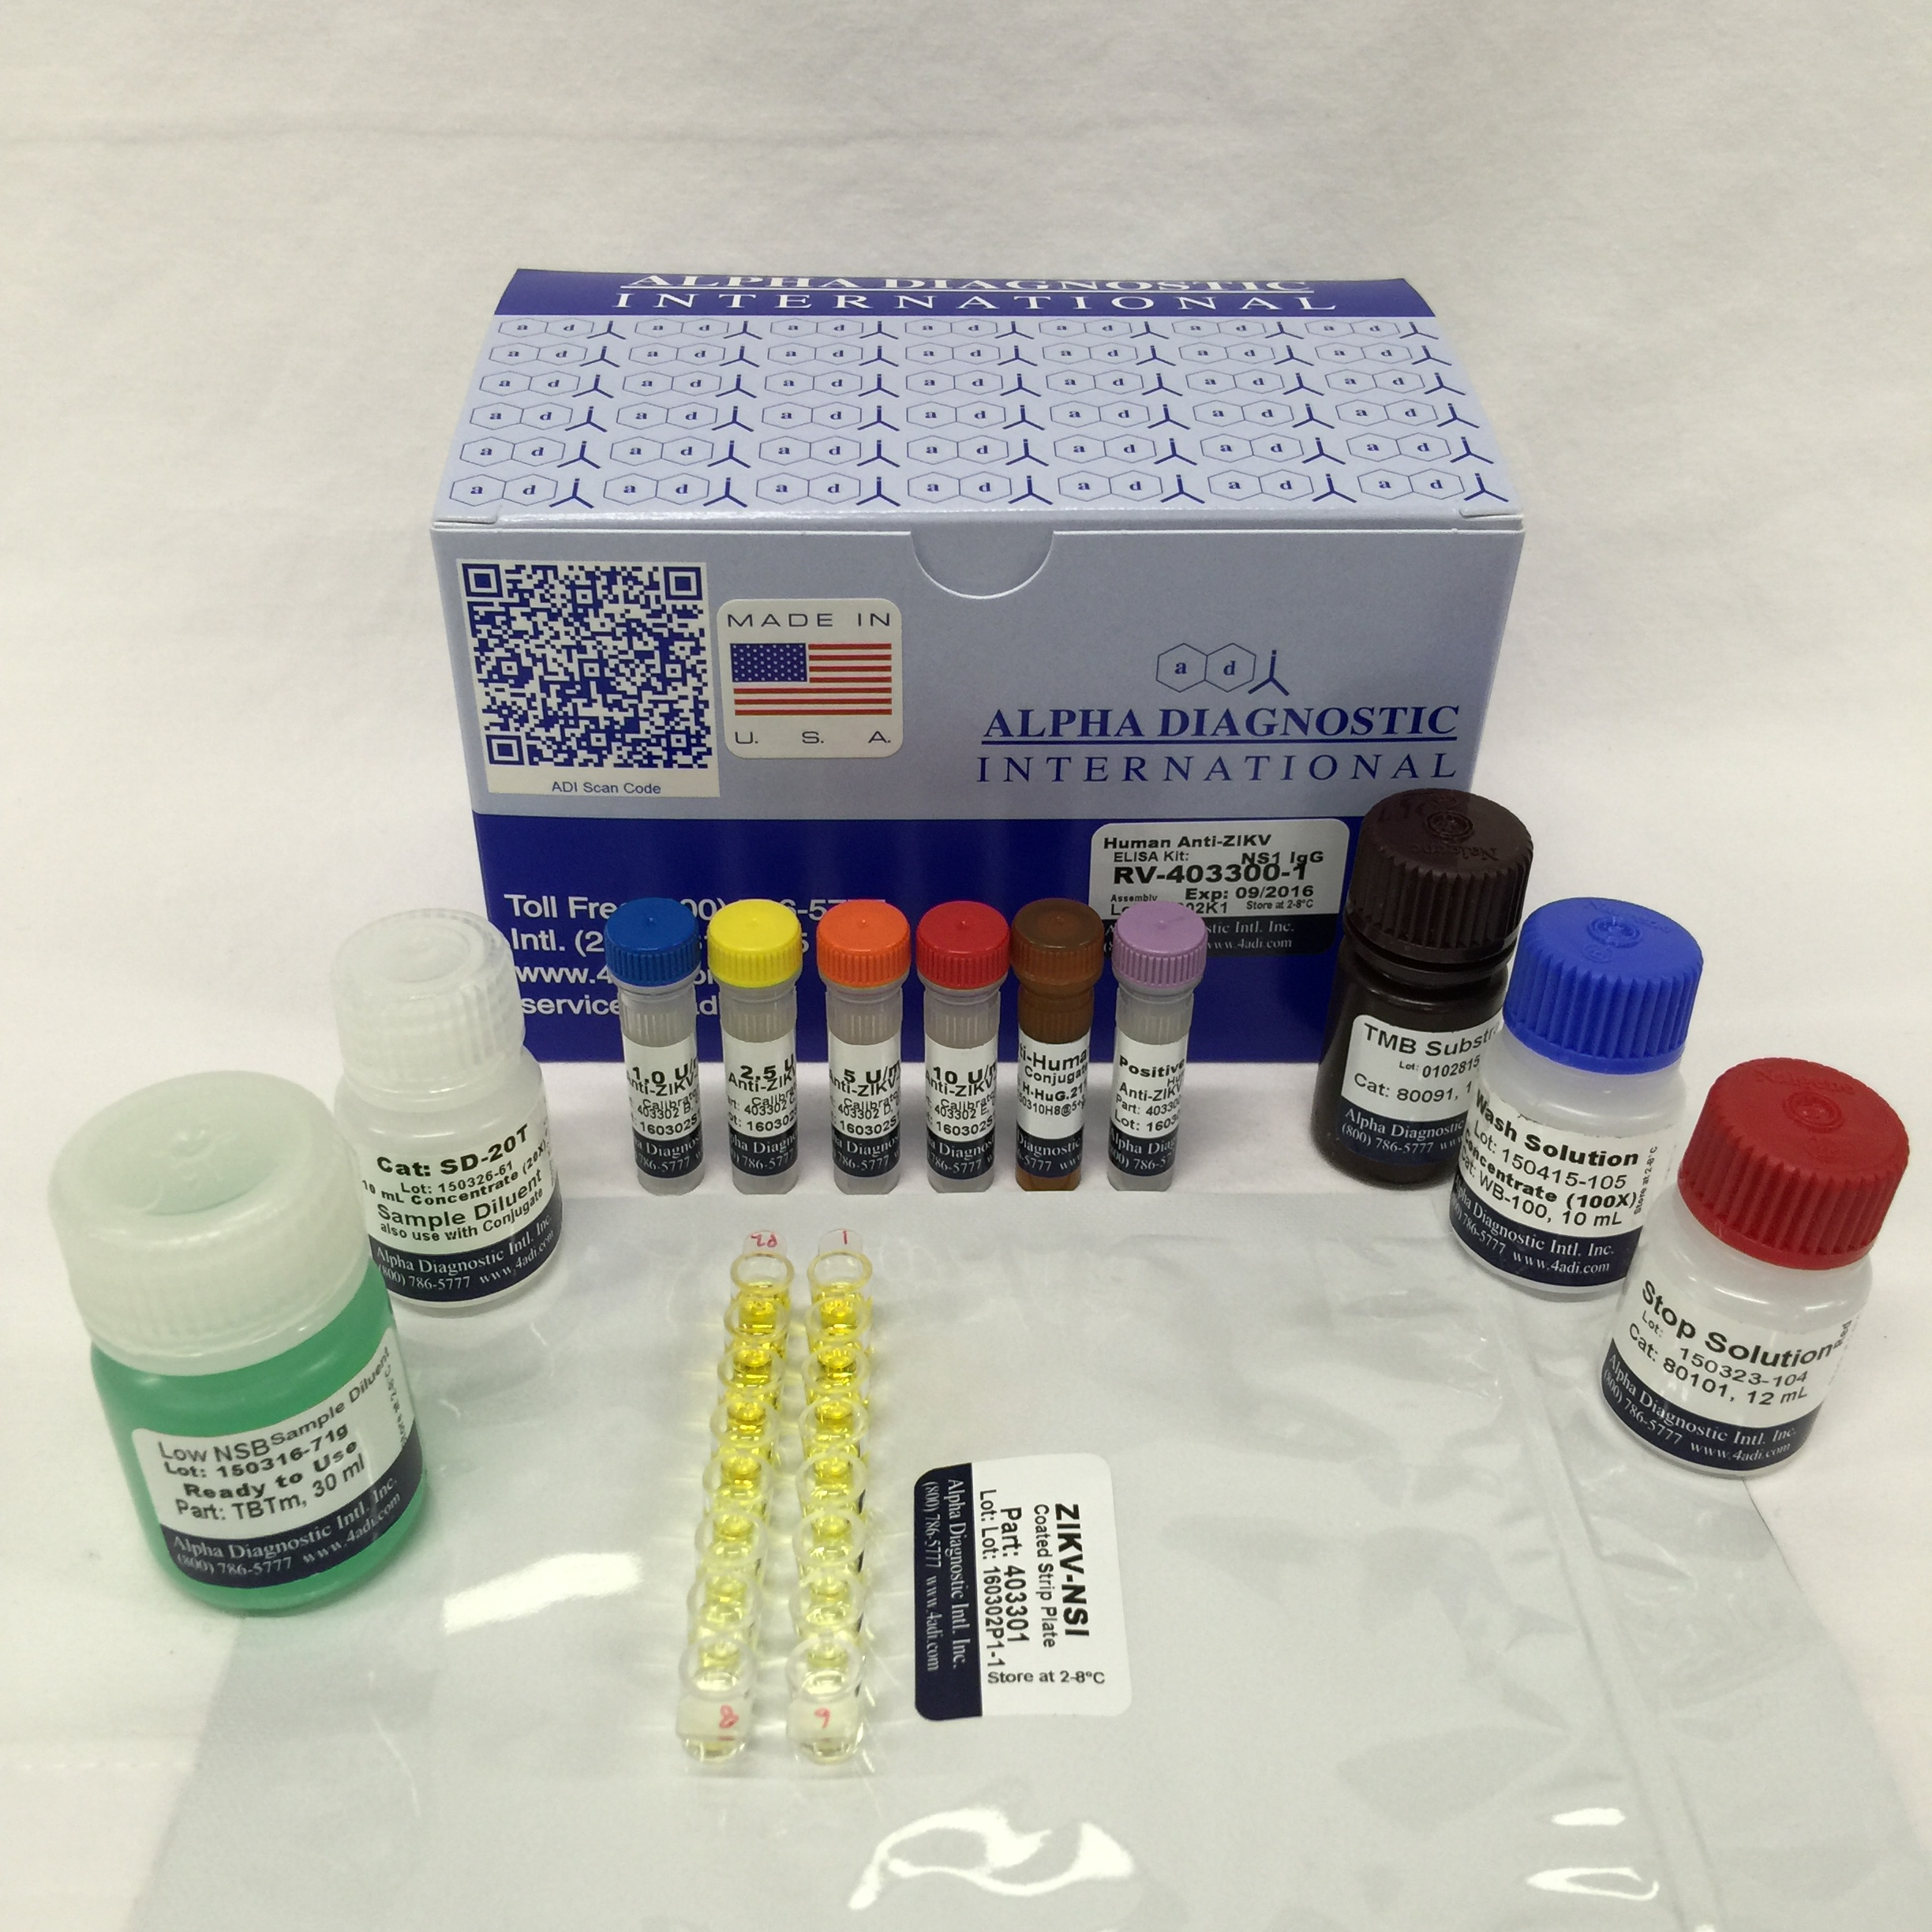 Zika Virus Detection In Humans And Animals Using Elisa Kits